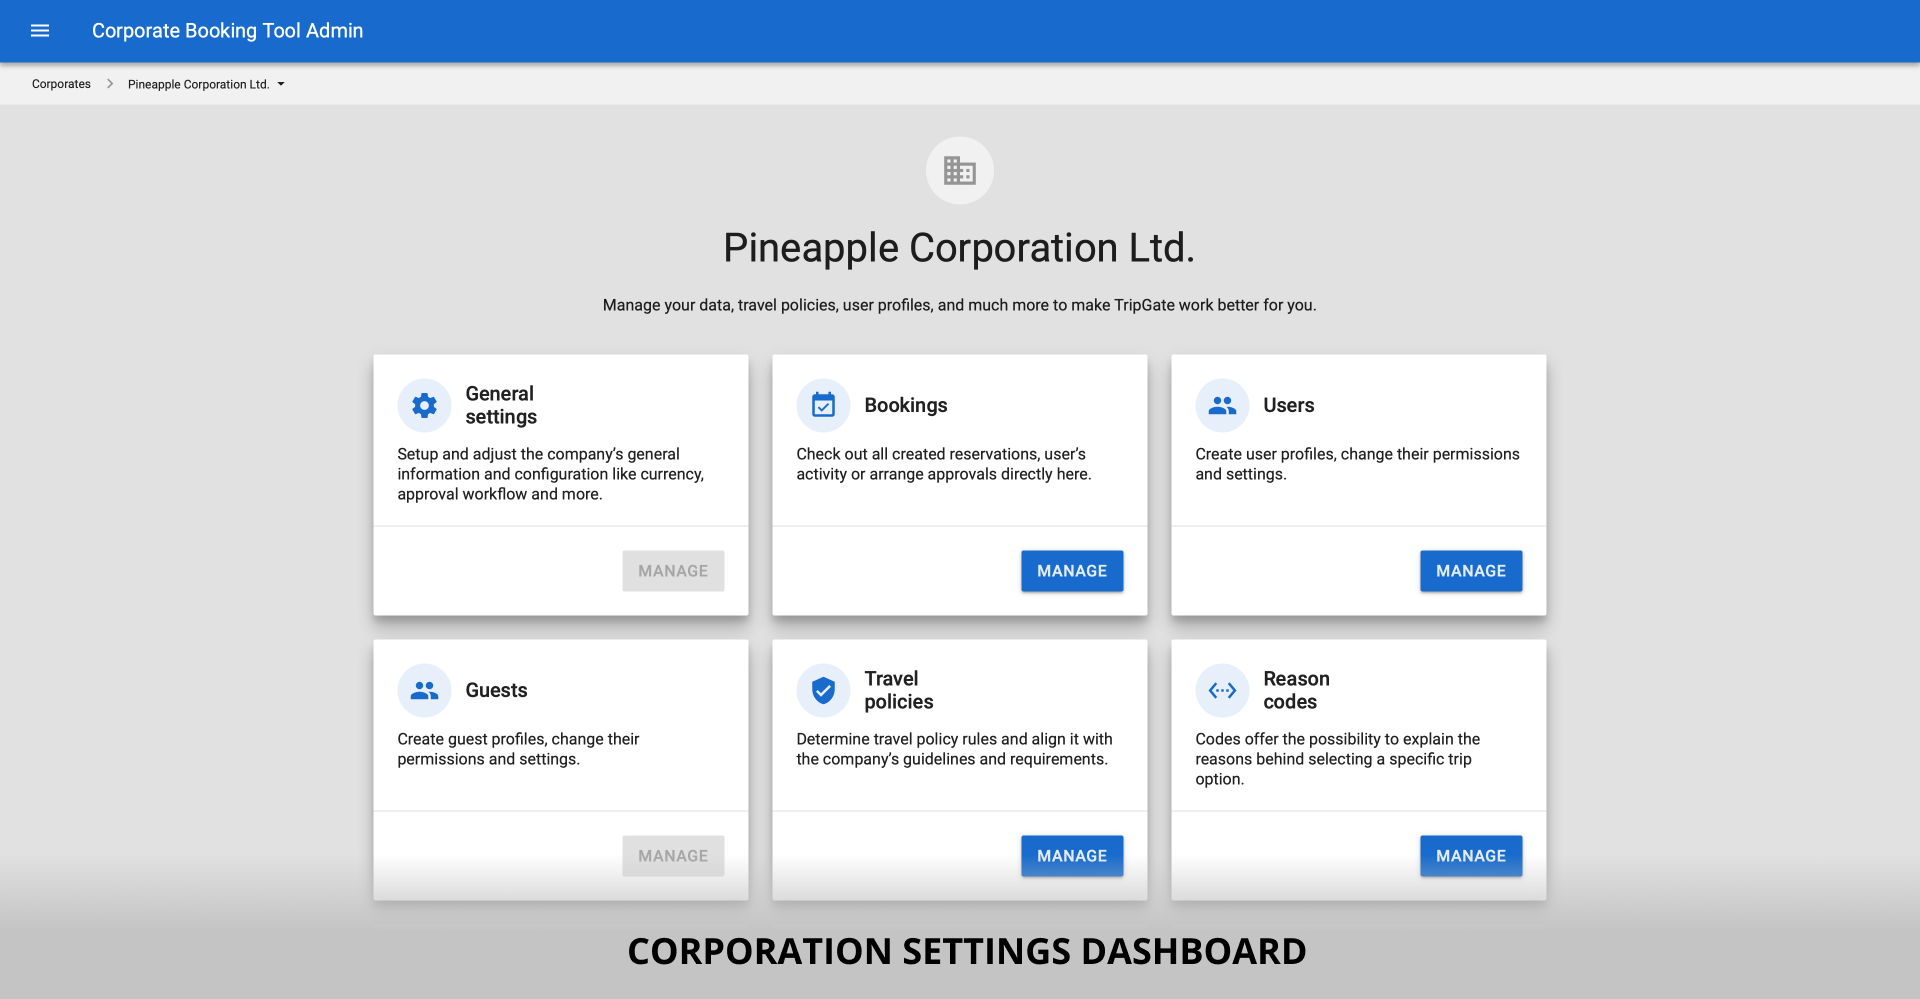 Corporation settings dashboard